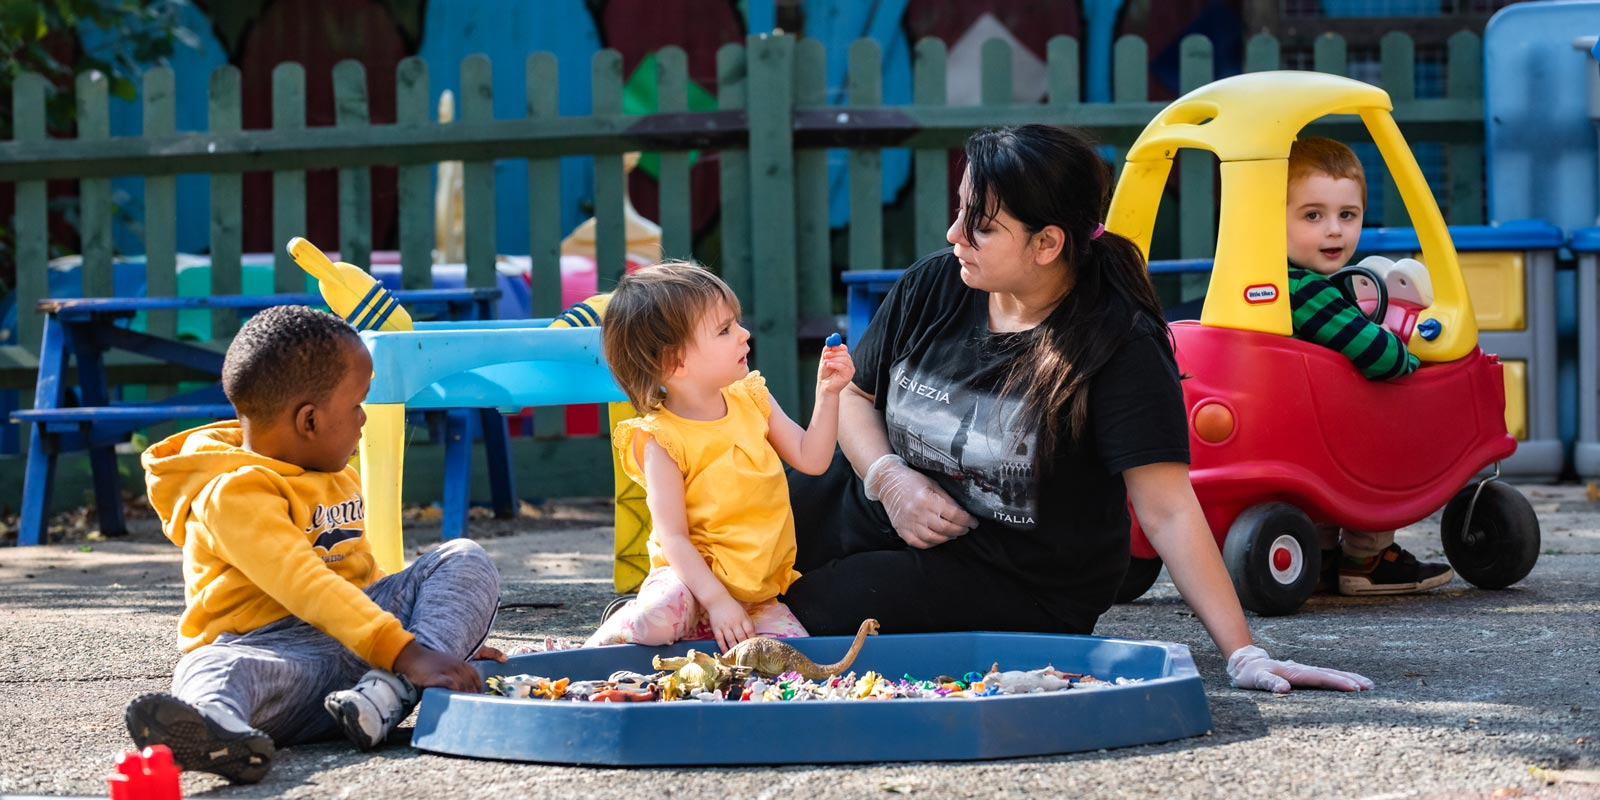 Welcome to Little Cedars Day Nursery & pre-school in Streatham, London SW16. We offer the highest quality childcare for babies & children under 5.